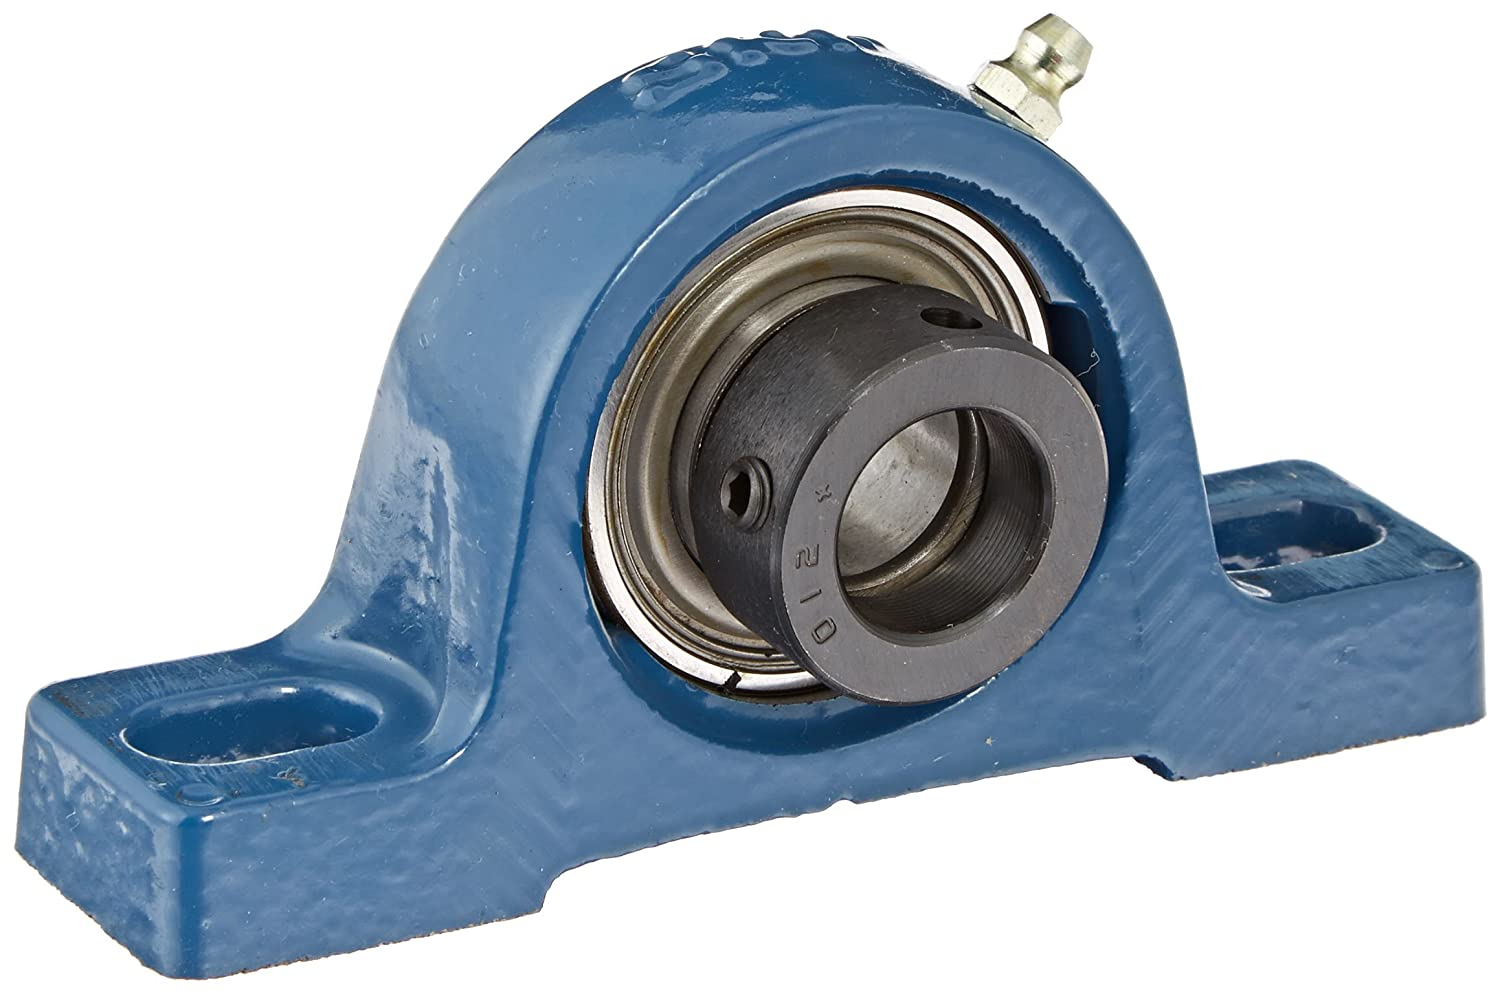 SKF SY 3/4 FM Pillow Block Ball Bearing, 2 Bolts, Normal-Duty, Eccentric Locking Collar, Contact Seals, Cast Iron, Inch, 3/4